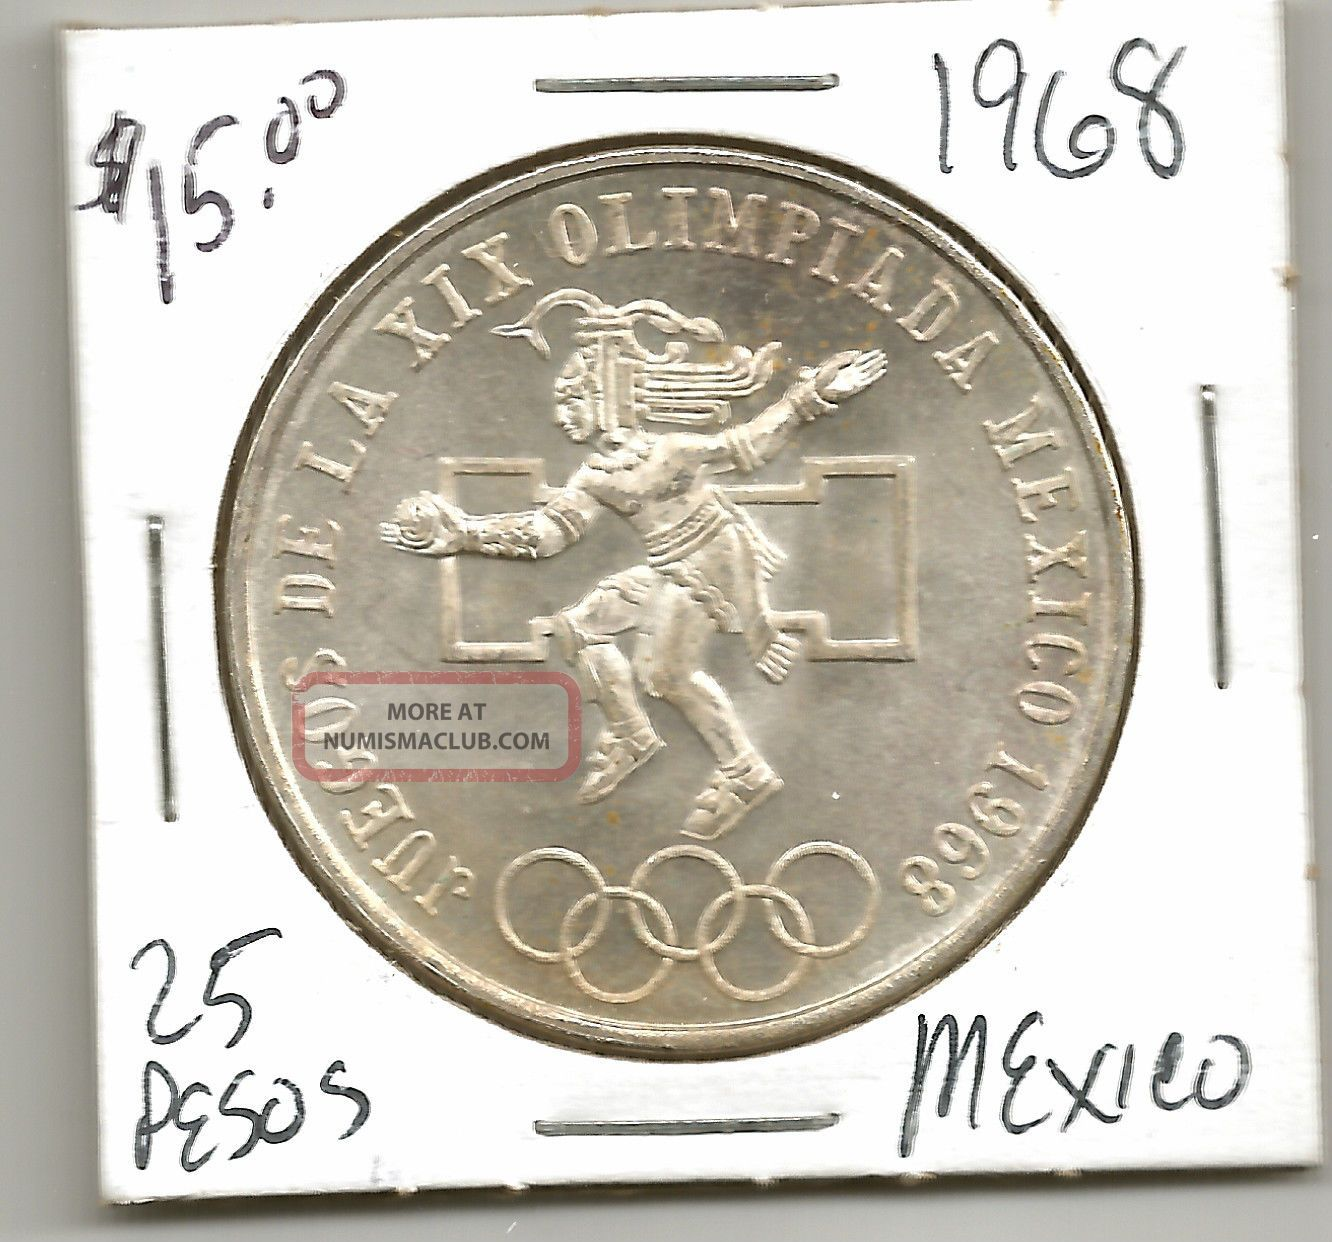 1968 Mexican 25 Pesos Olympics 720 Silver Coin Detail